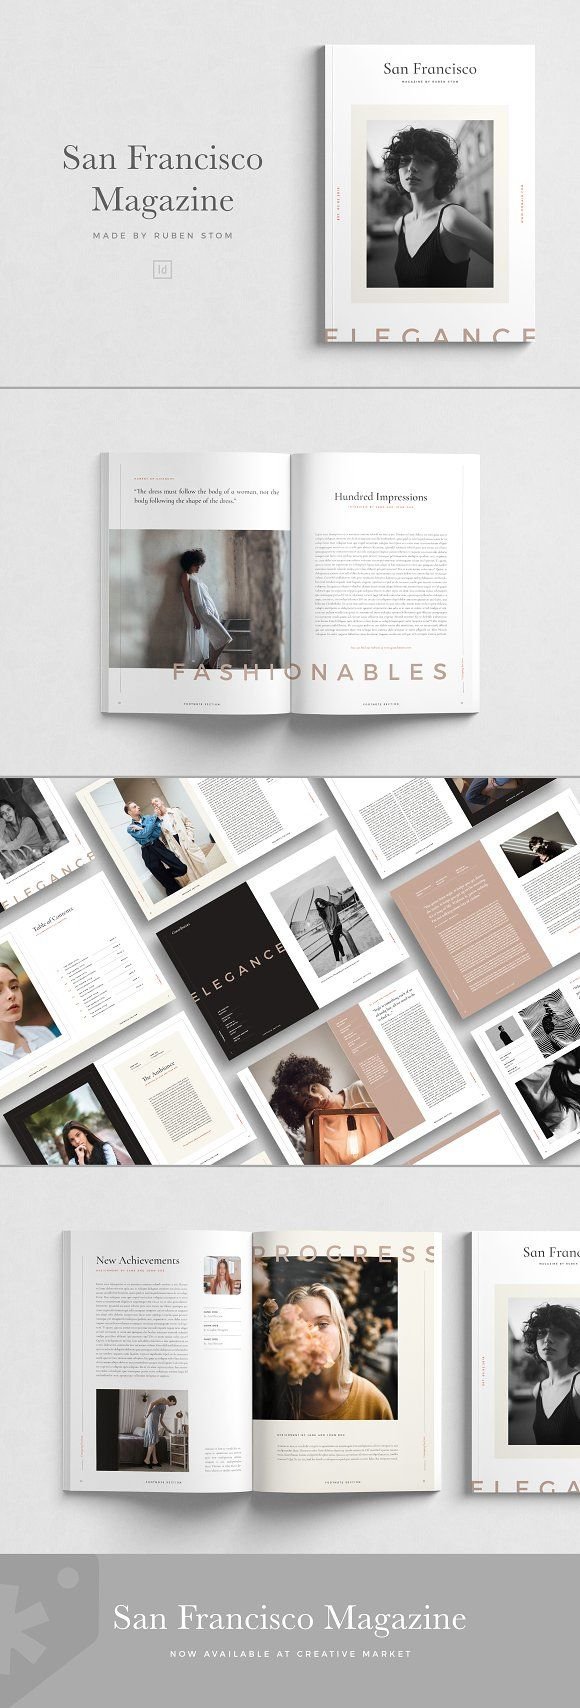 San Francisco Magazine by Ruben Stom on Creative Market